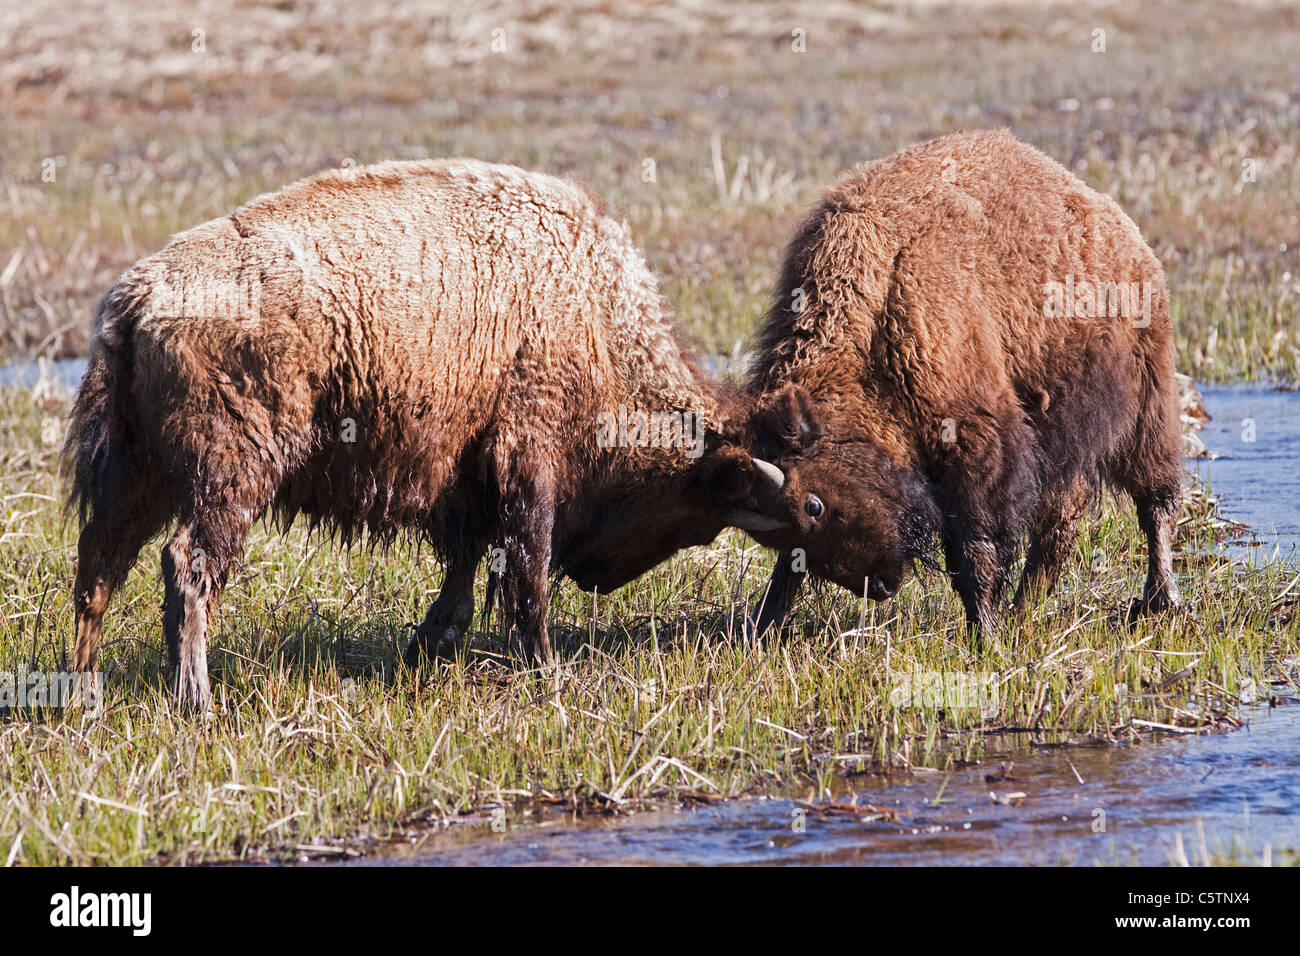 USA, Yellowstone Park, American Bisons (Bison bison) squaring Off - Stock Image